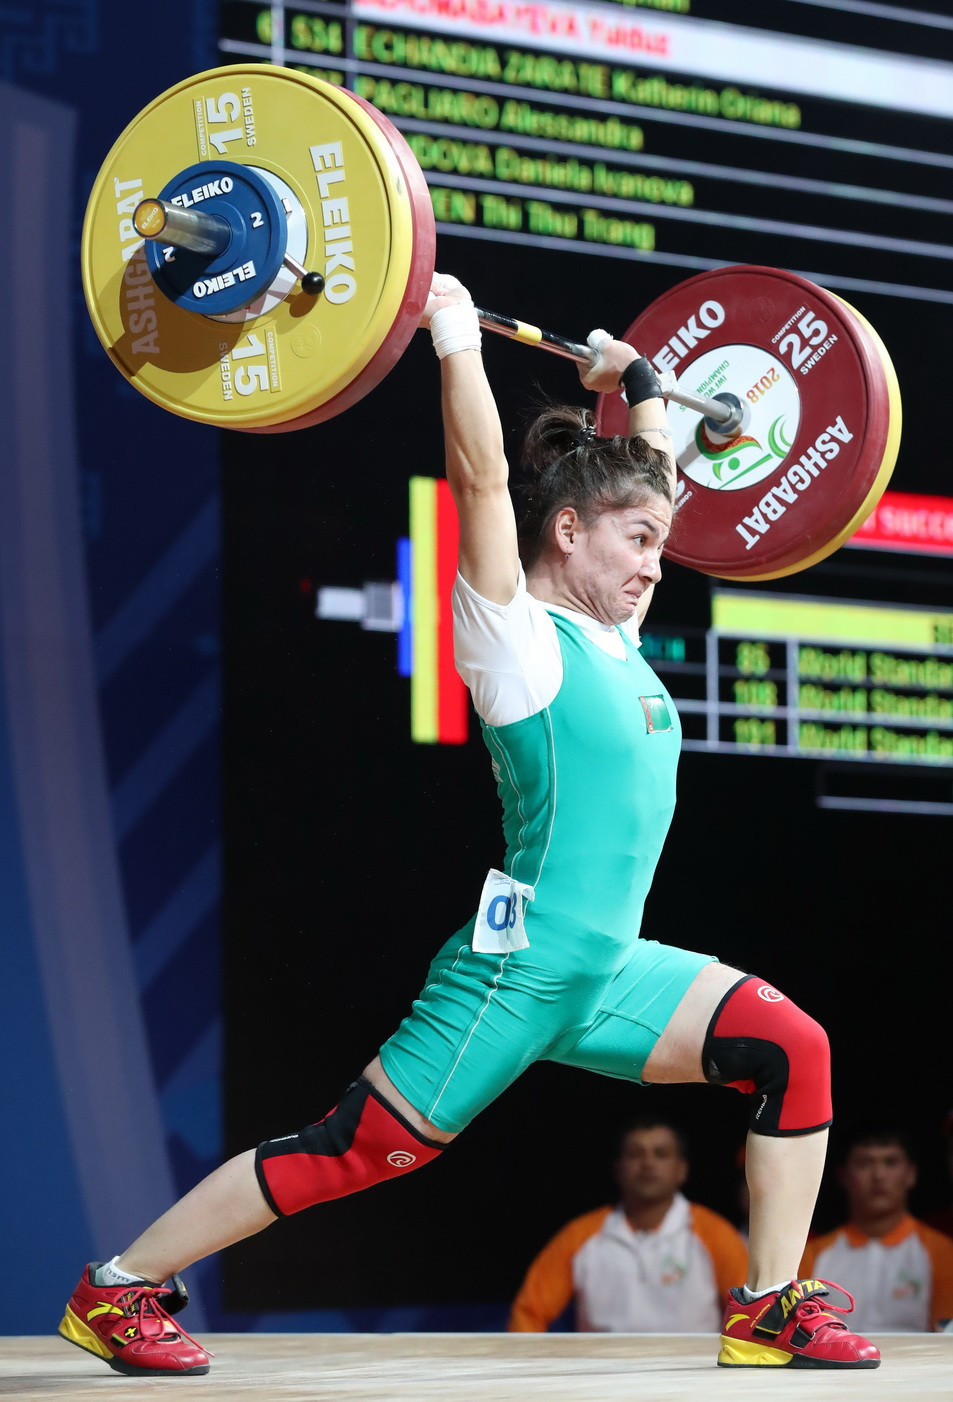 Home athlete Yulduz Dzhumabayeva today had two of her bronze medals from yesterday's women's 45 kilograms event at the 2018 International Weightlifting Federation World Championships upgraded to silver ©IWF